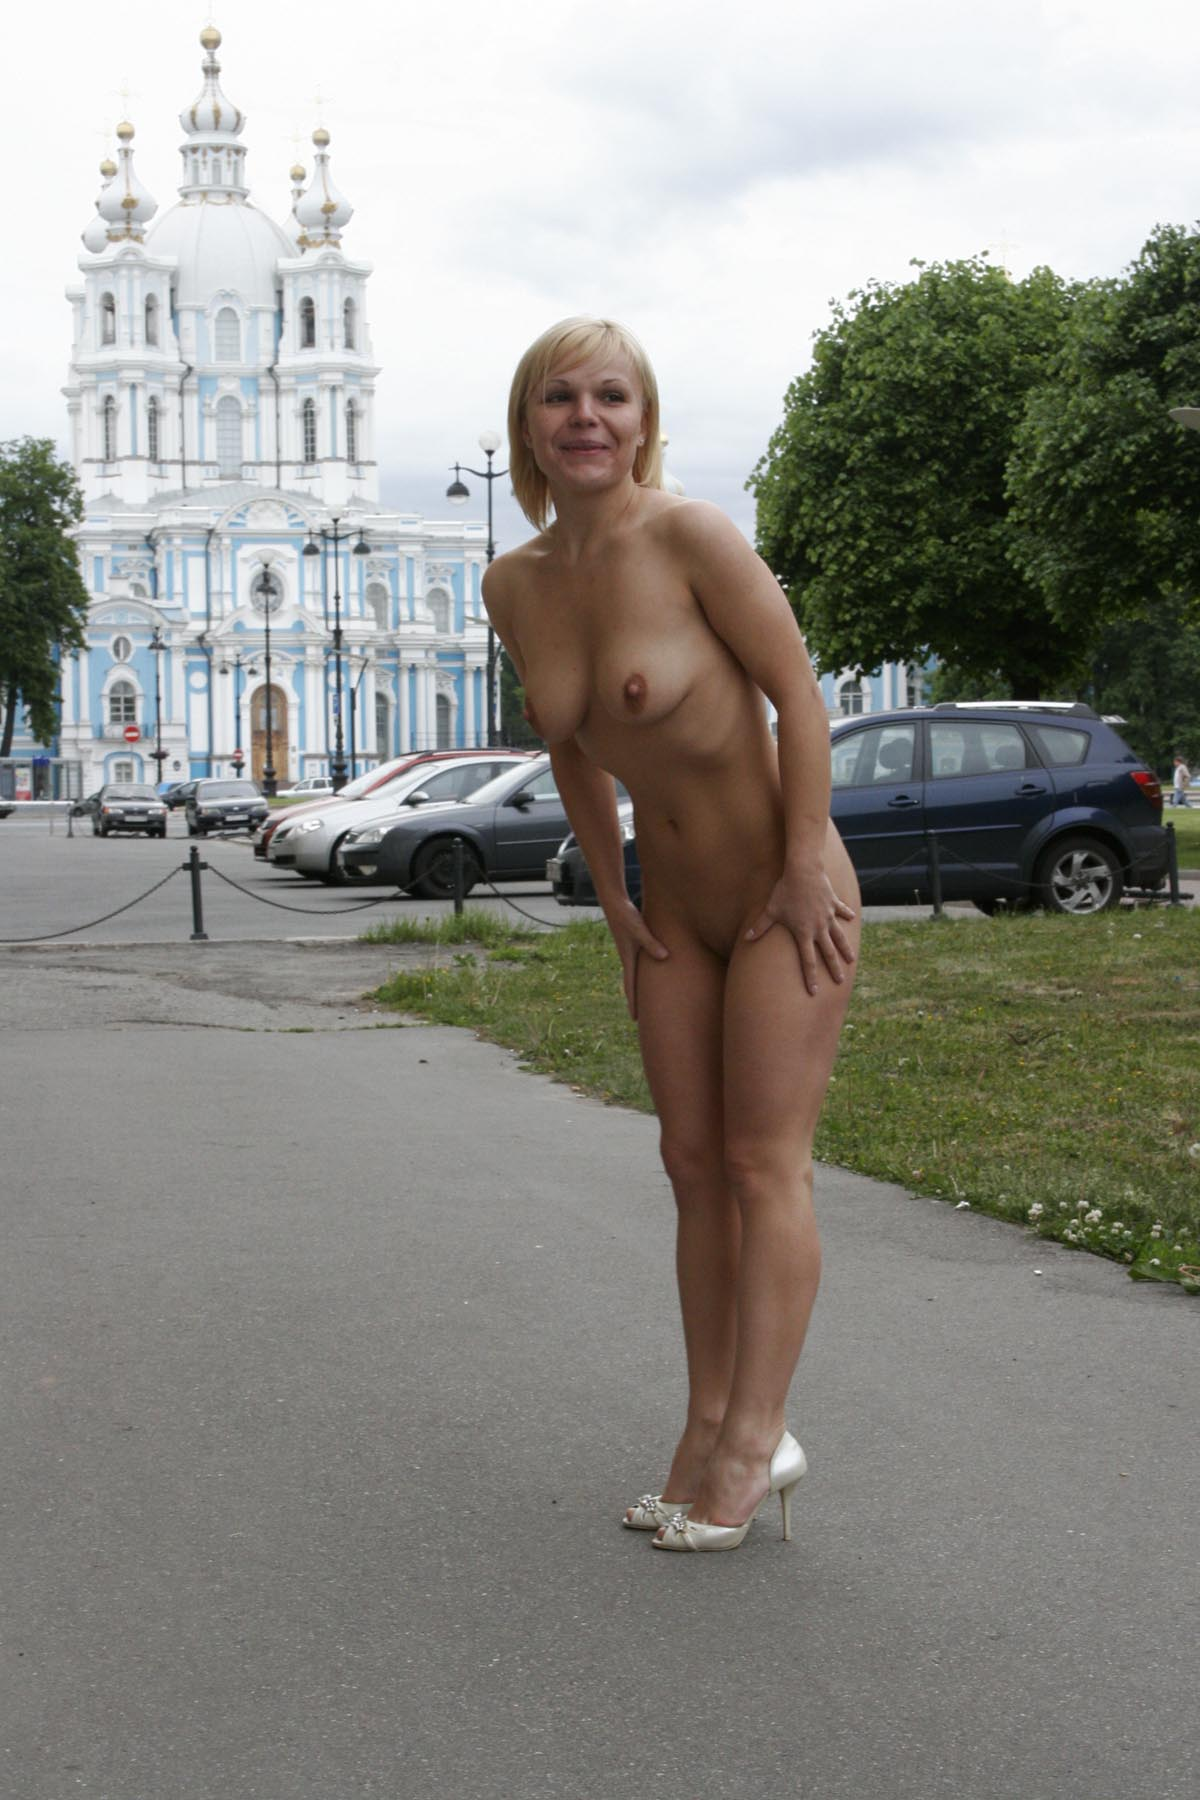 Apologise, but, Blonde short hair naked girl